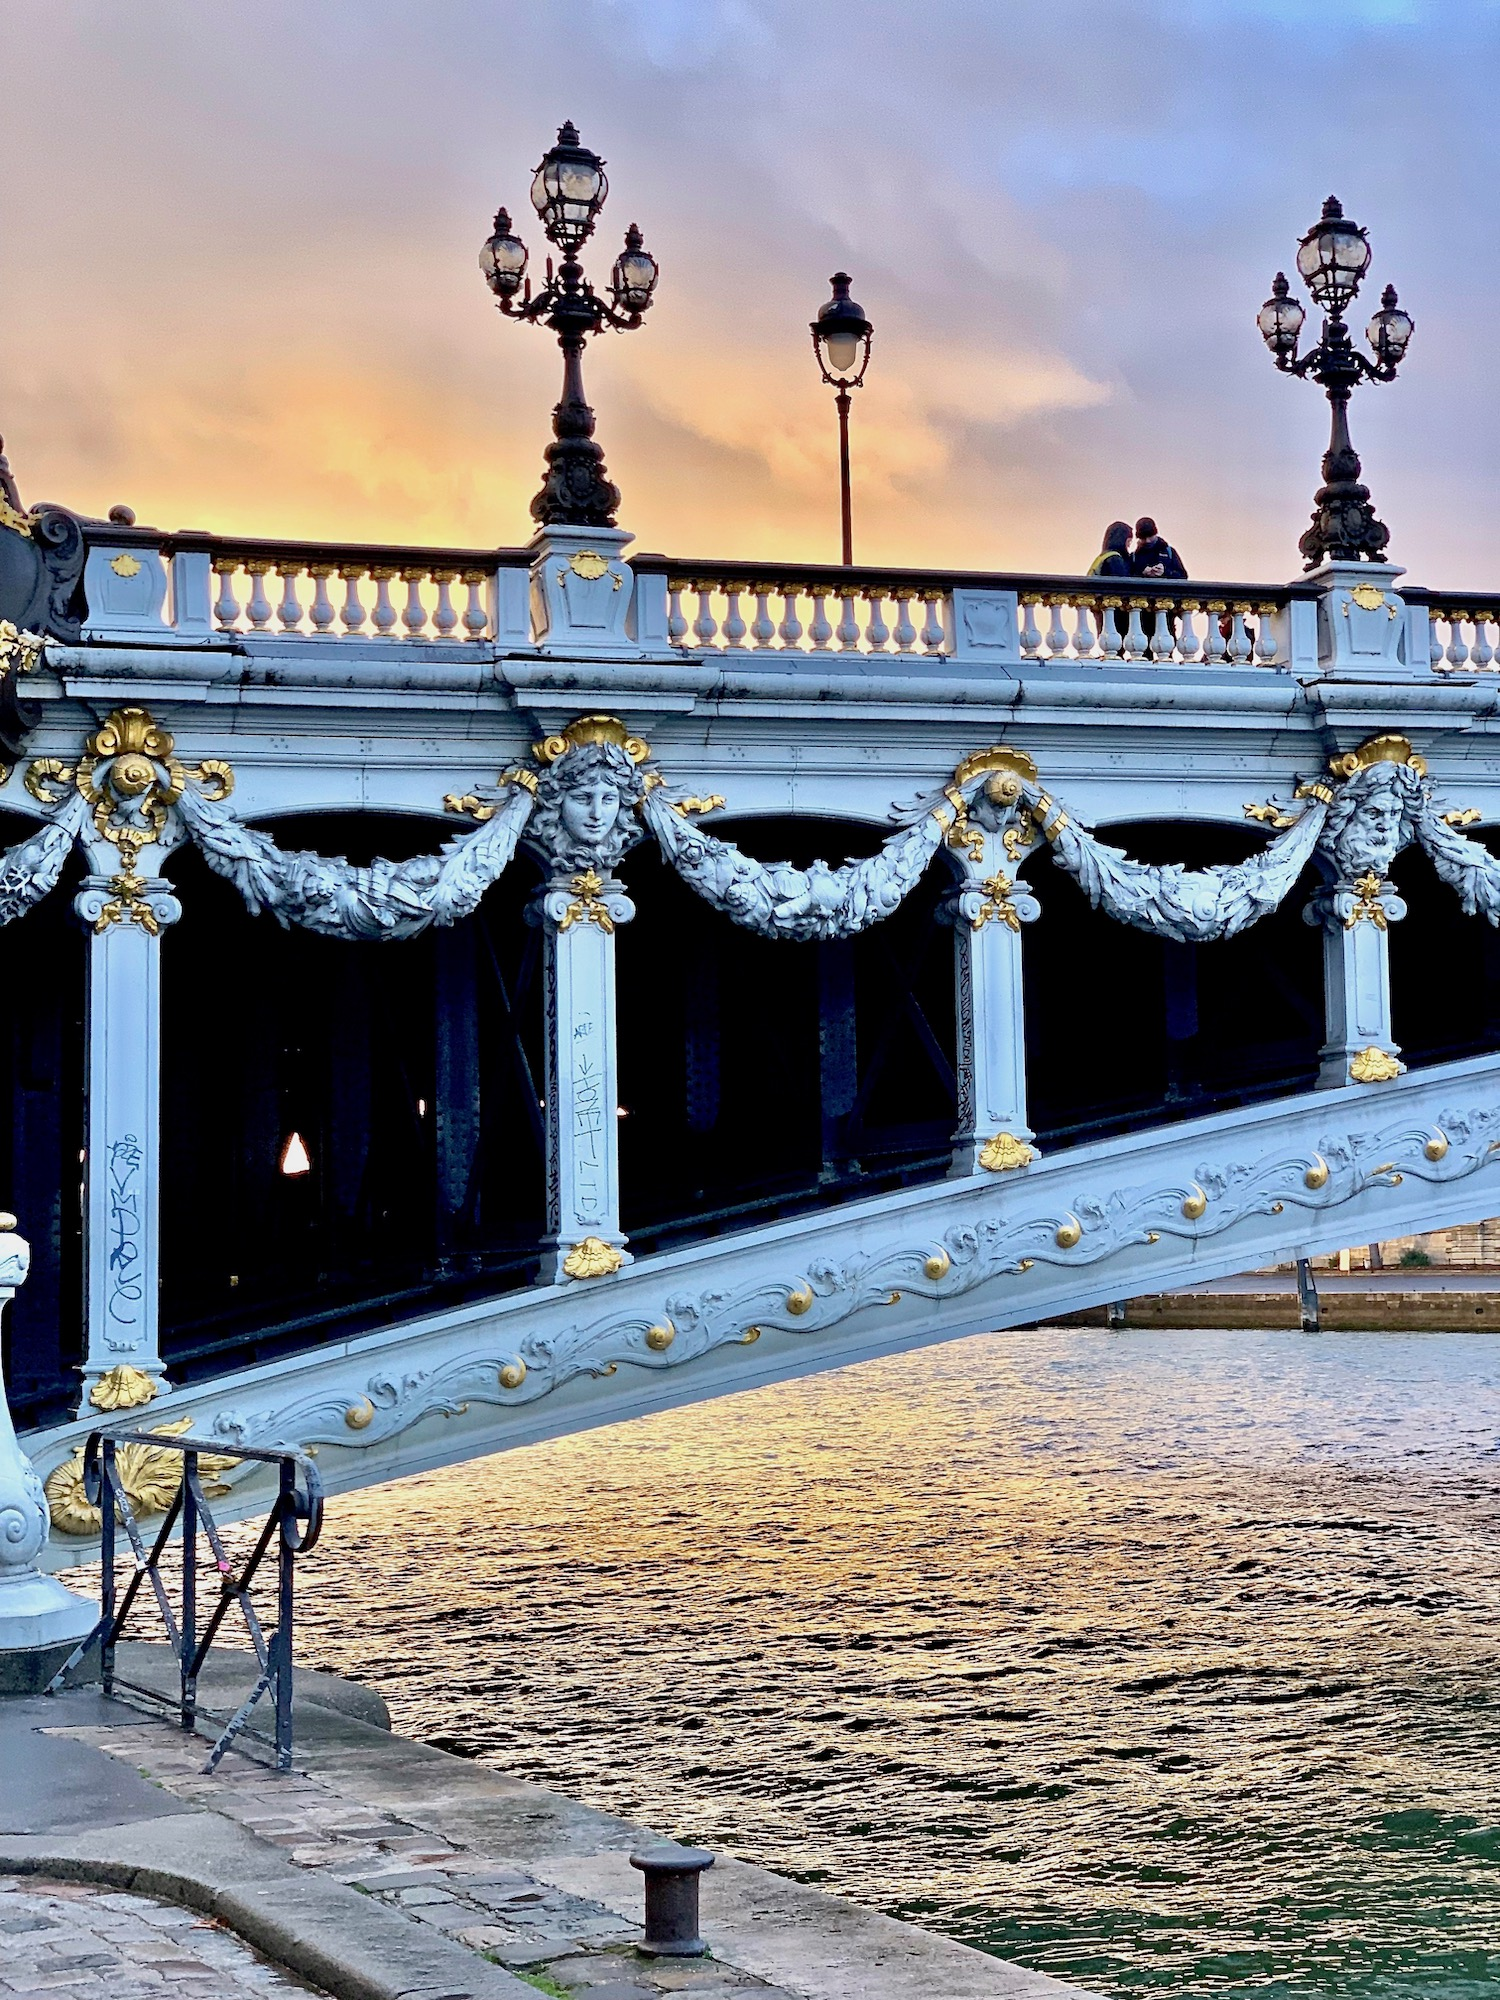 Why I Moved To Paris: Pont Alexandre III at sunset